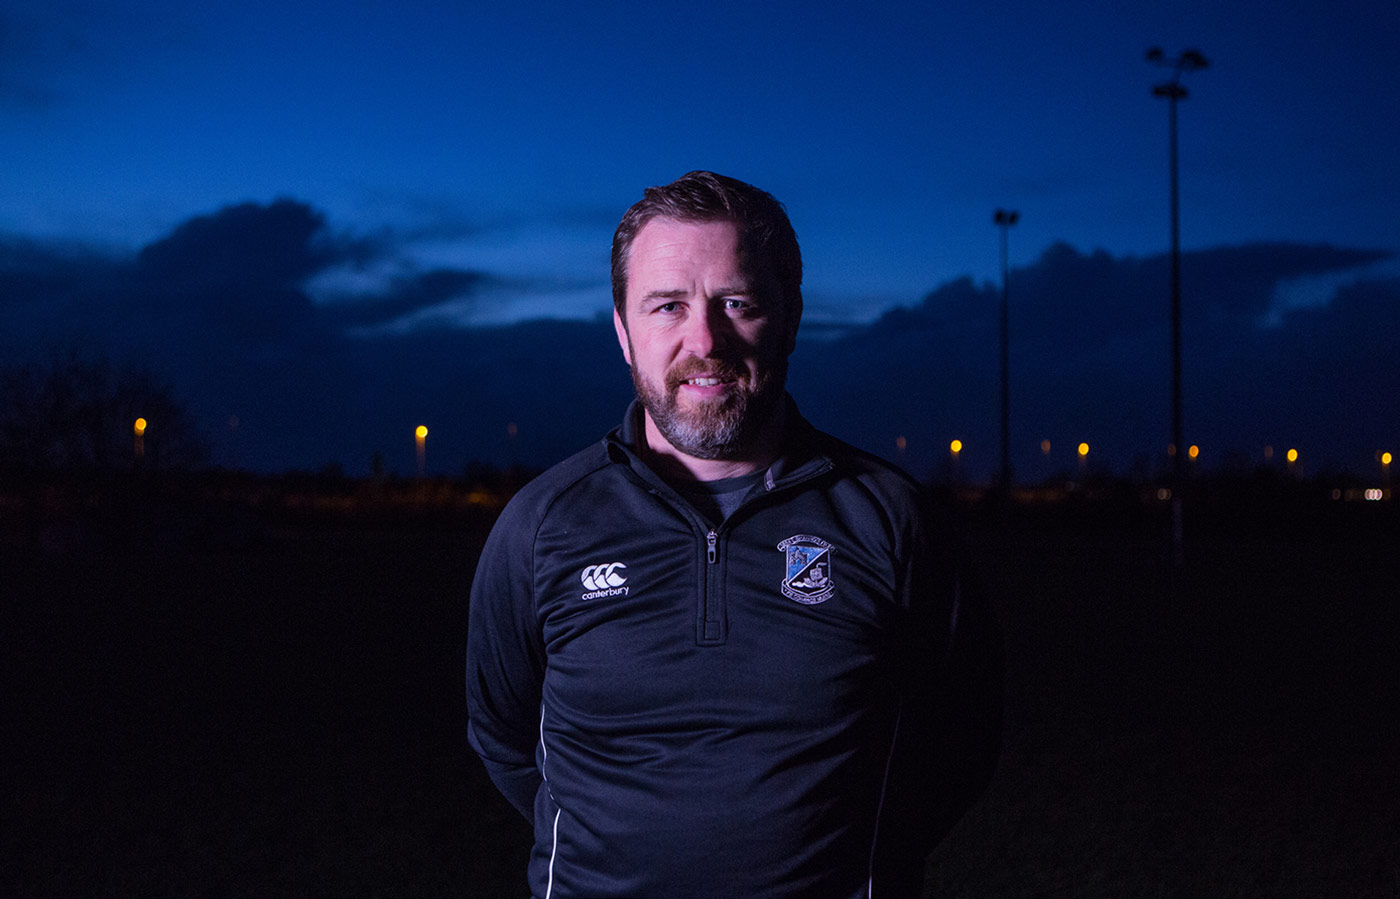 LIT video and photography production of man in sports uniform on a dark pitch